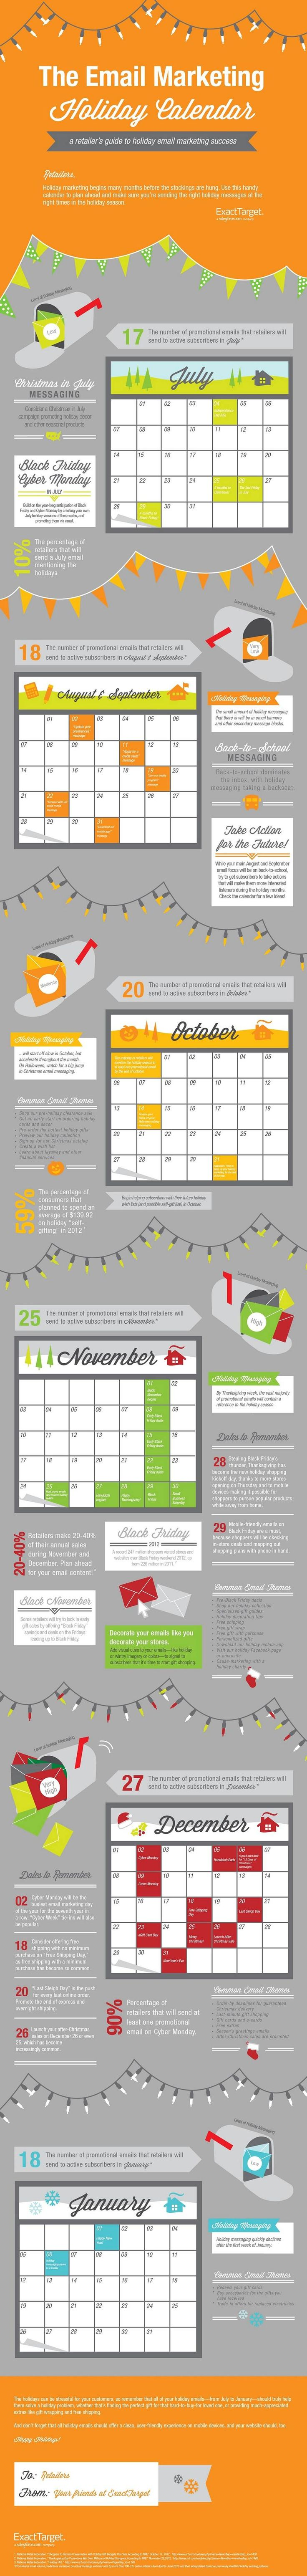 Good for planning your blog editorial calendar too | #editorial #calendar